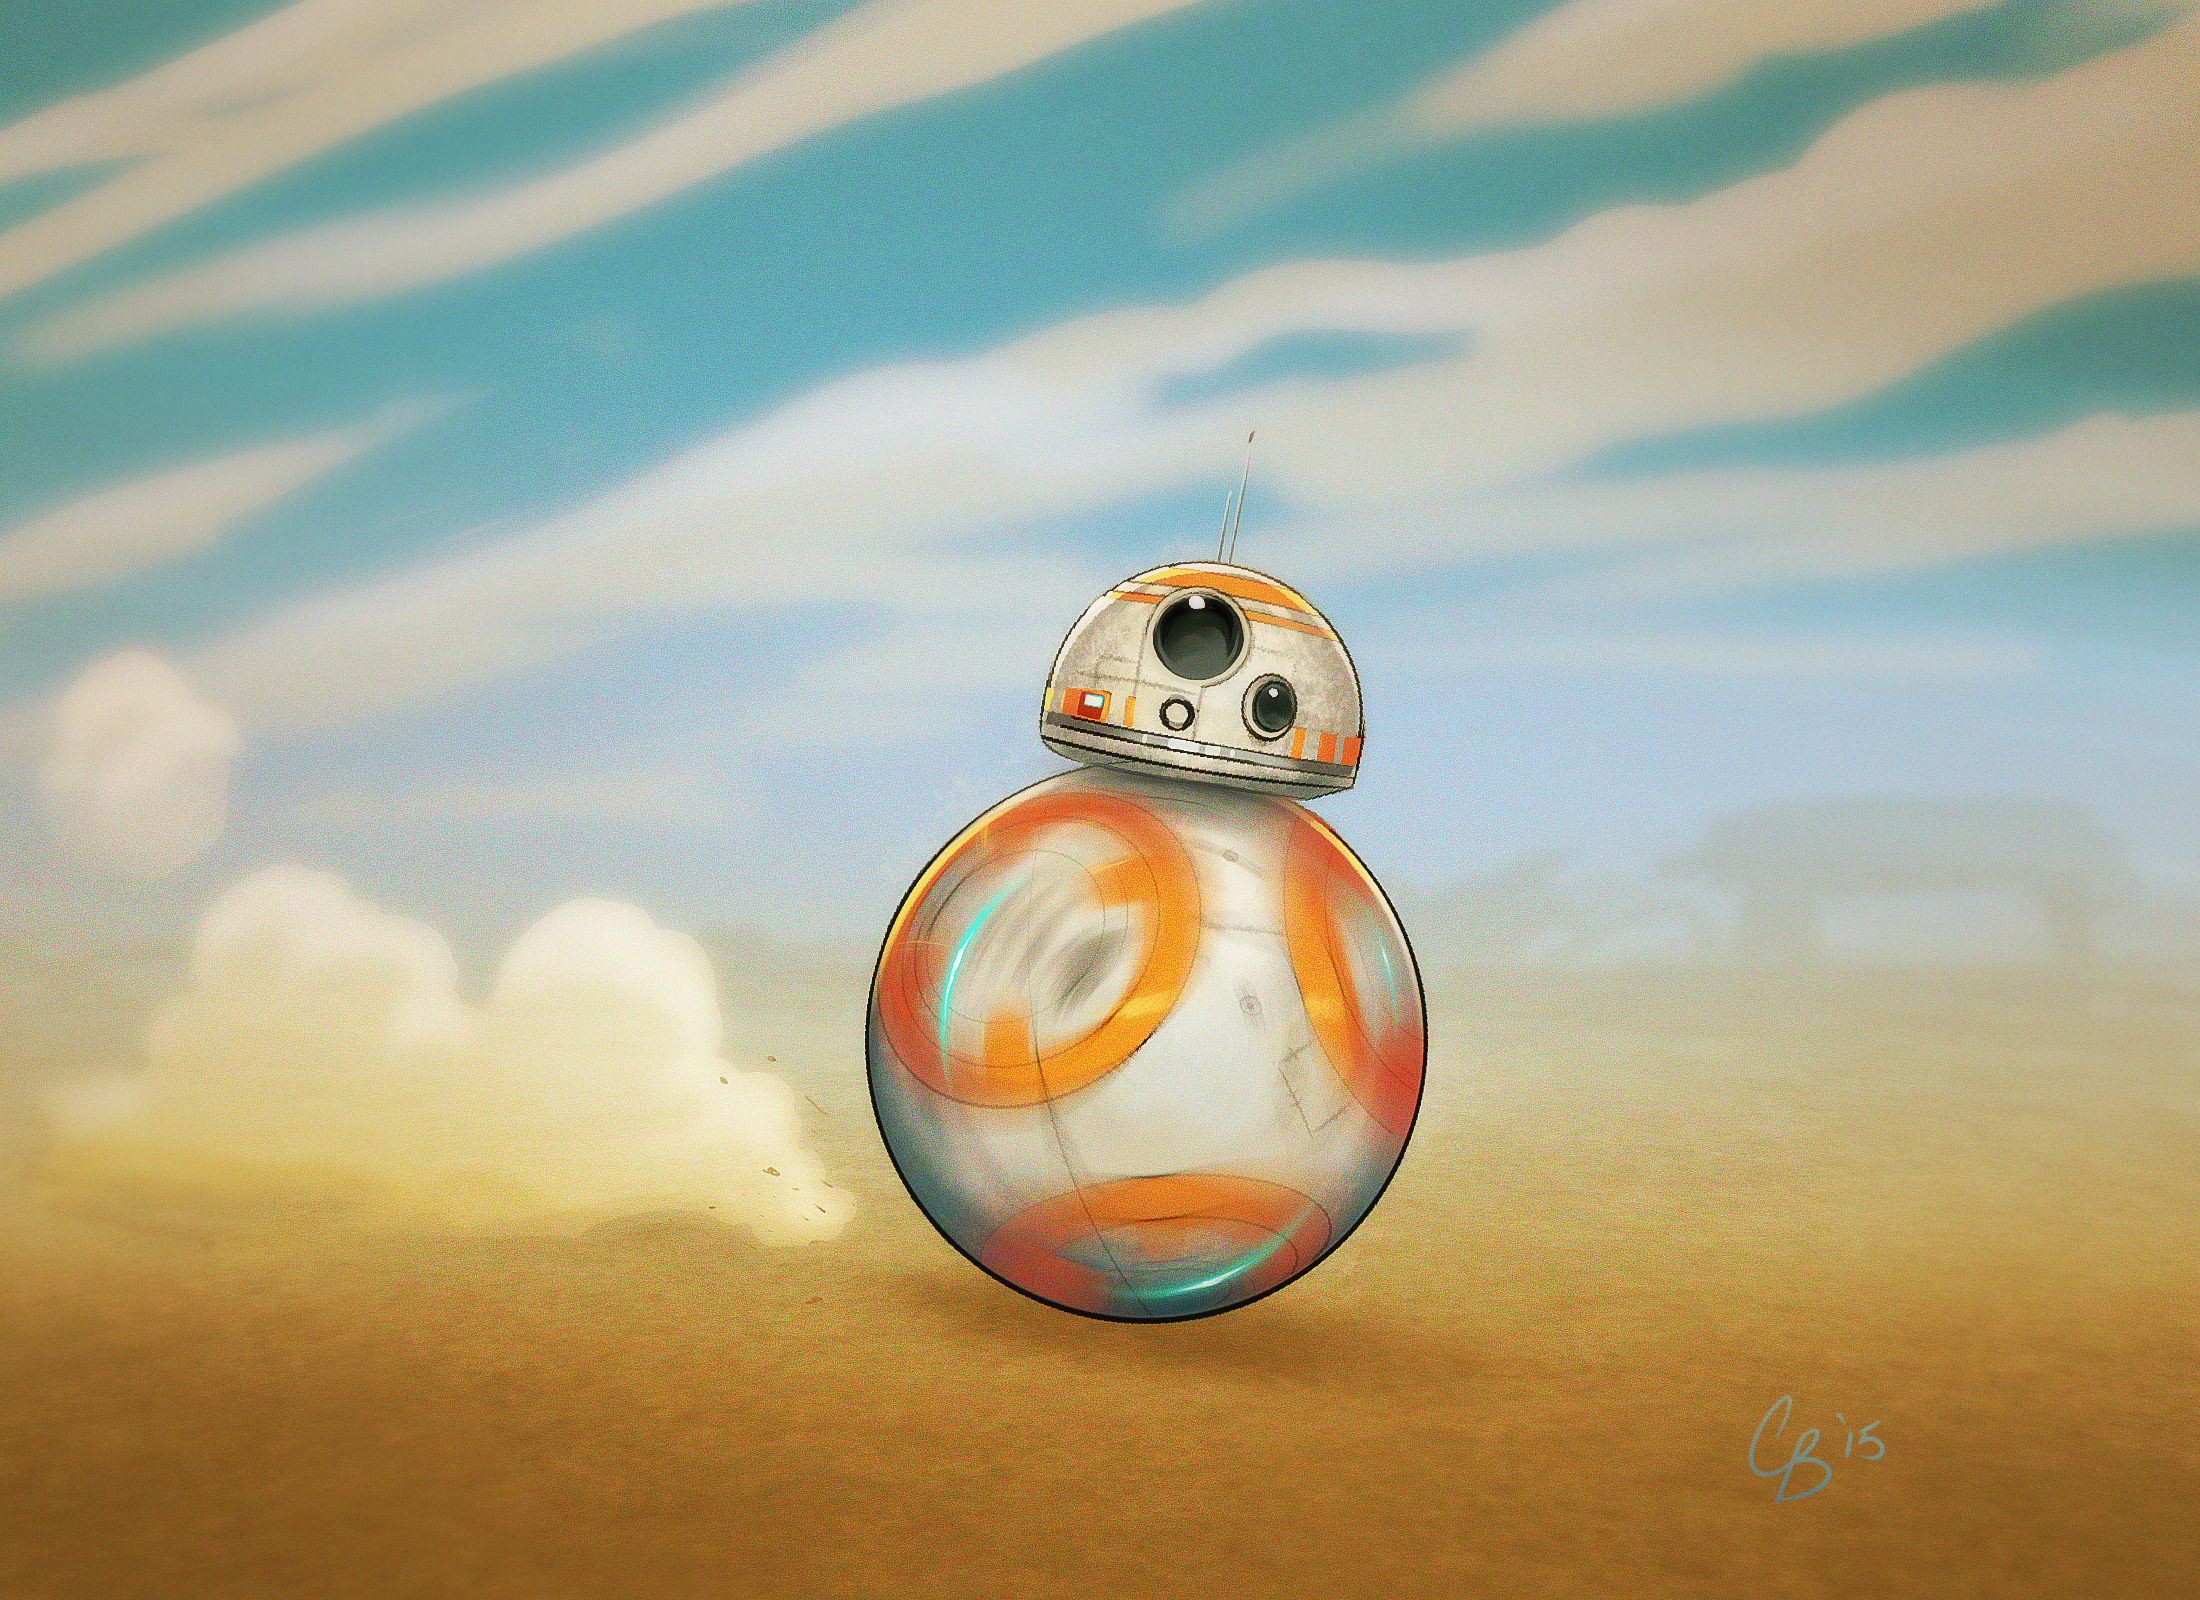 bb8 wallpaper hd - photo #6